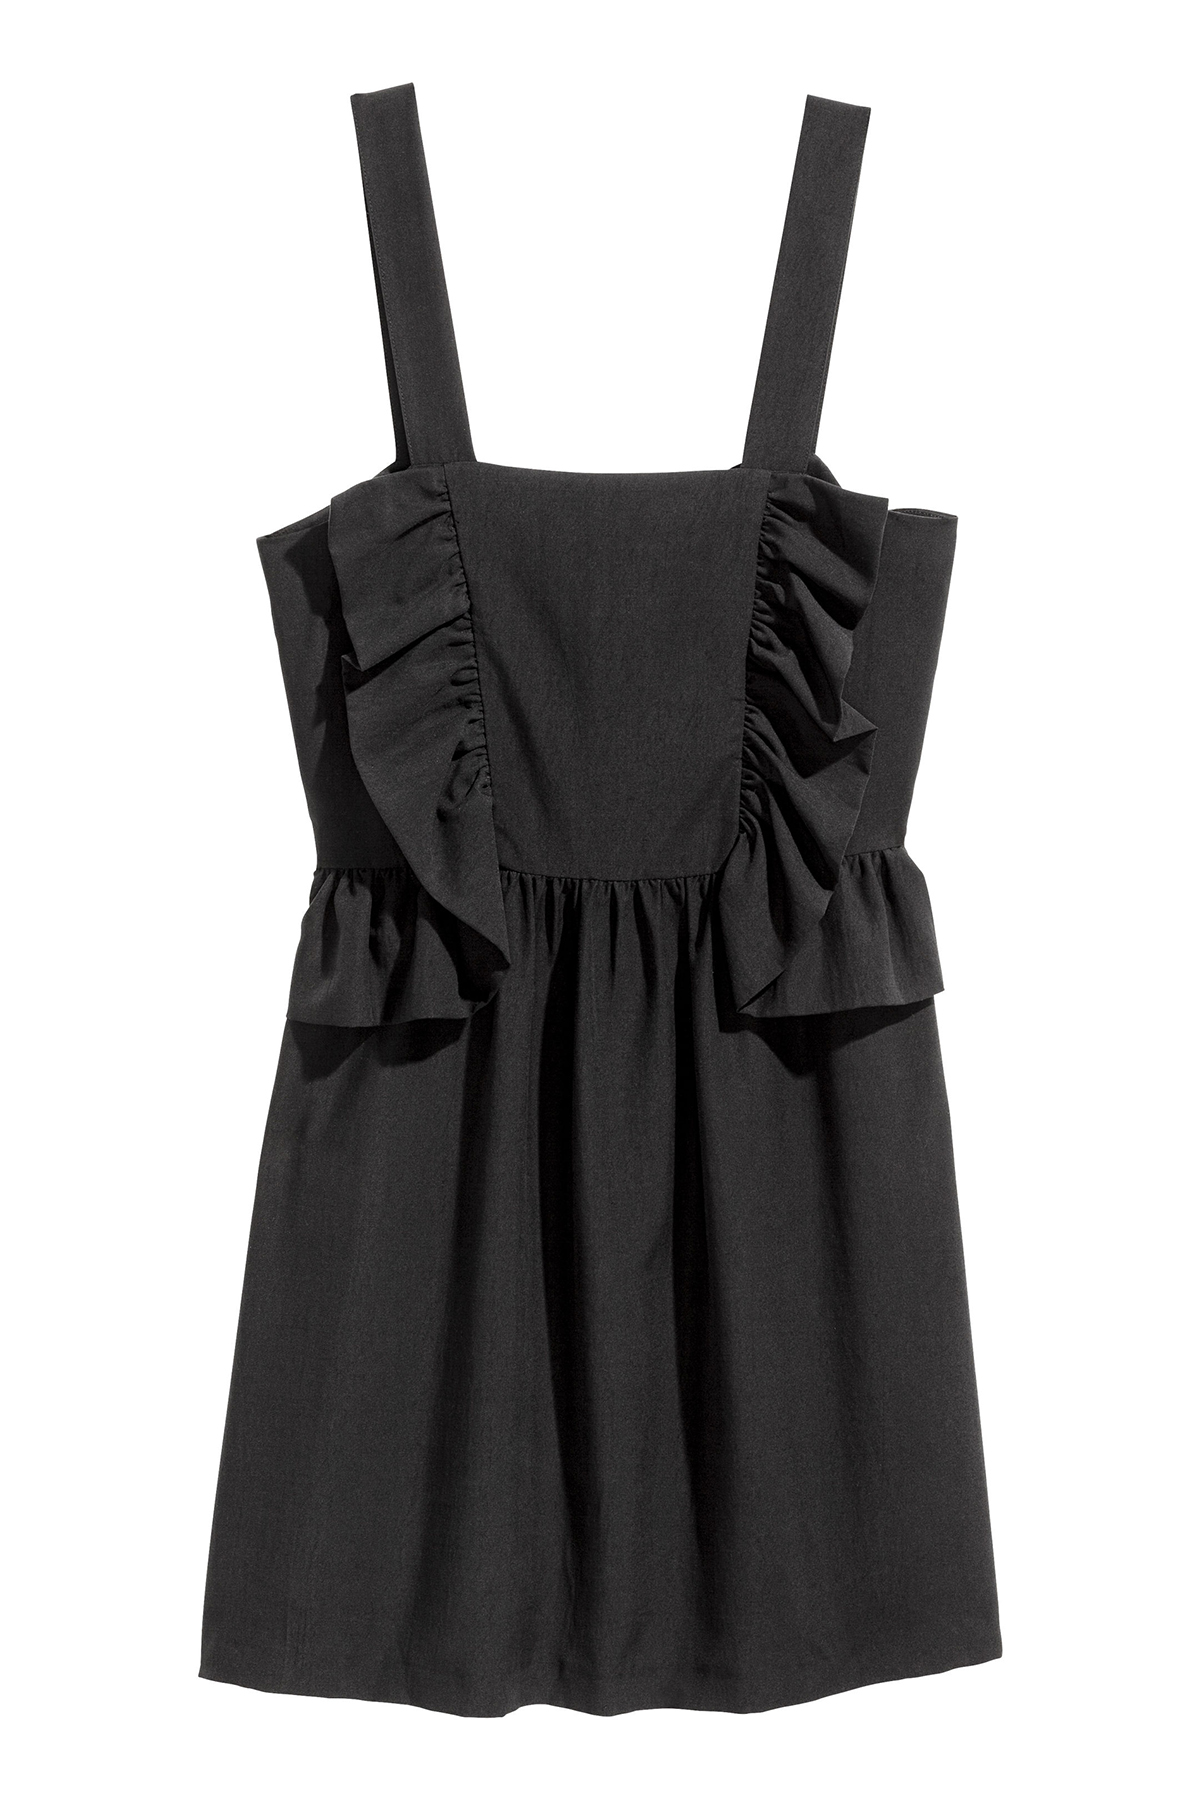 hym-rebajas-2018-verano-vestidos-little-black-dress. Mini vestido negro